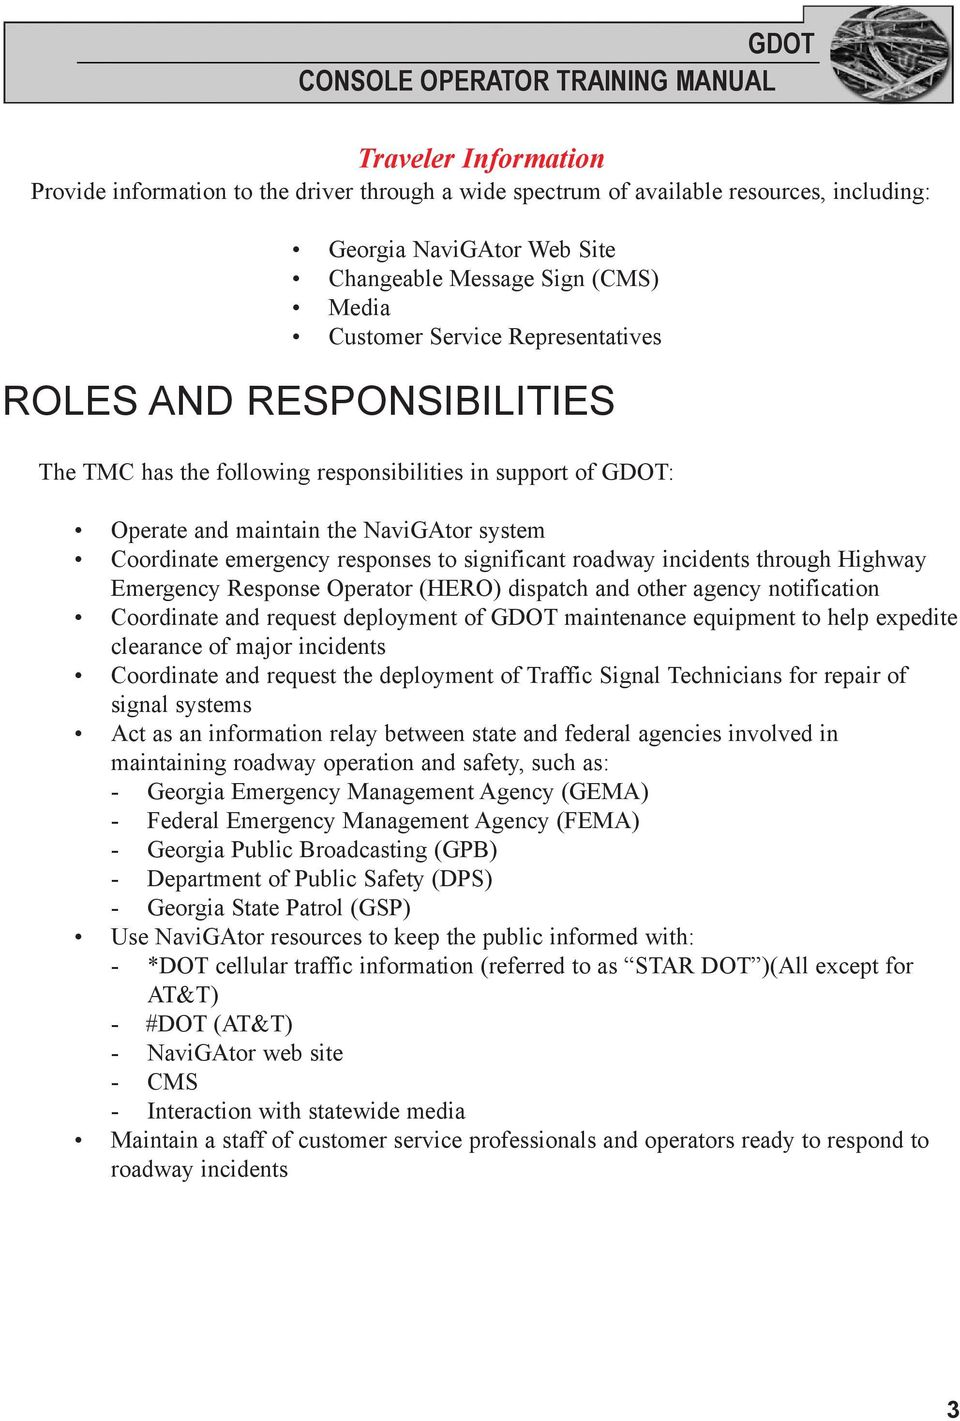 emergency responses to significant roadway incidents through Highway Emergency Response Operator (HERO) dispatch and other agency notification Coordinate and request deployment of GDOT maintenance